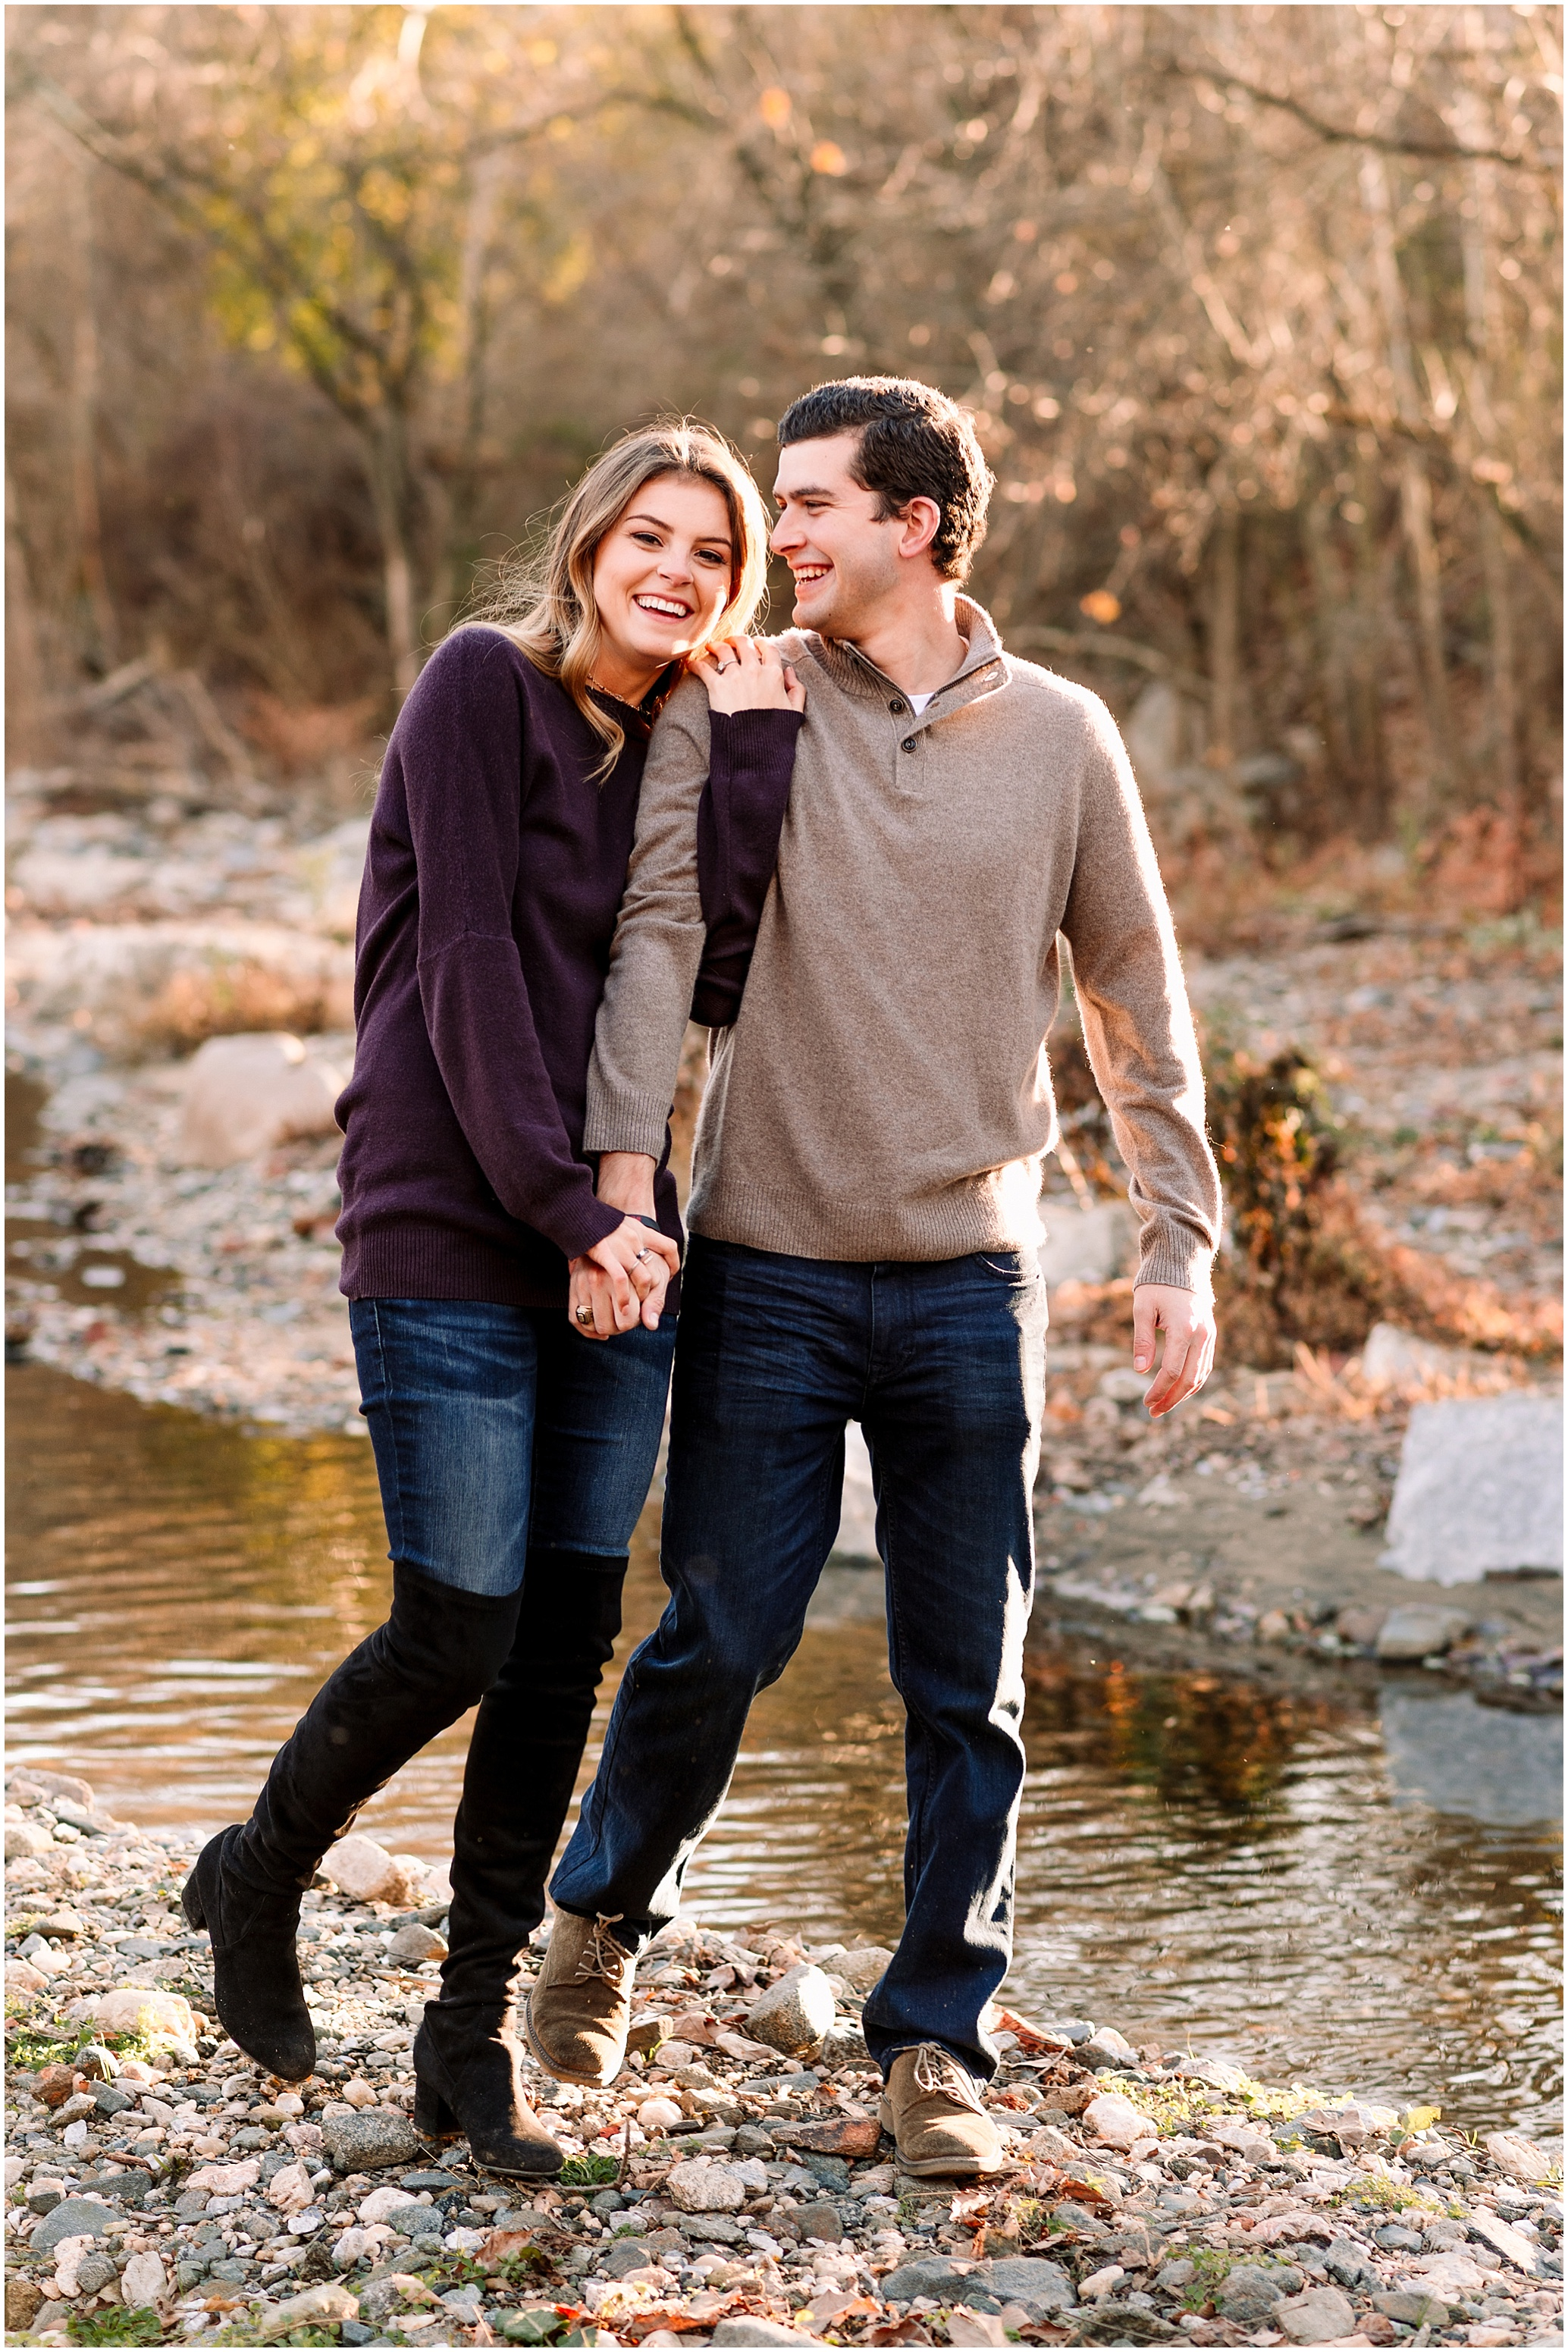 Hannah Leigh Photography Ellicott City MD Engagement Session_6933.jpg